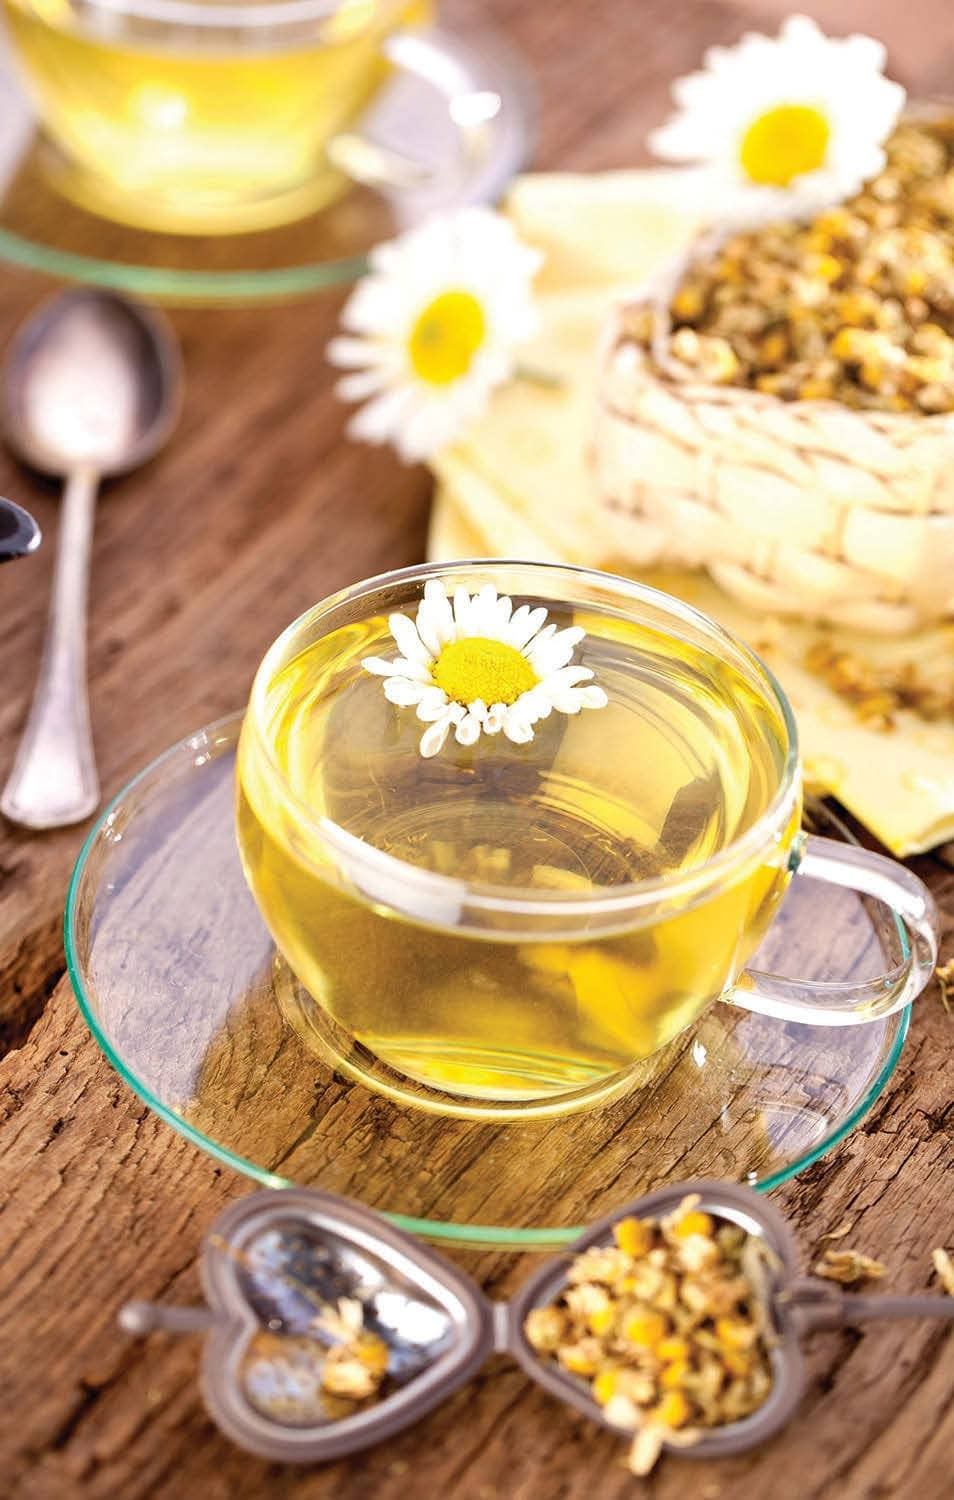 Chamomile Helps Arthritis, Blood Thinning and Mouth Pain